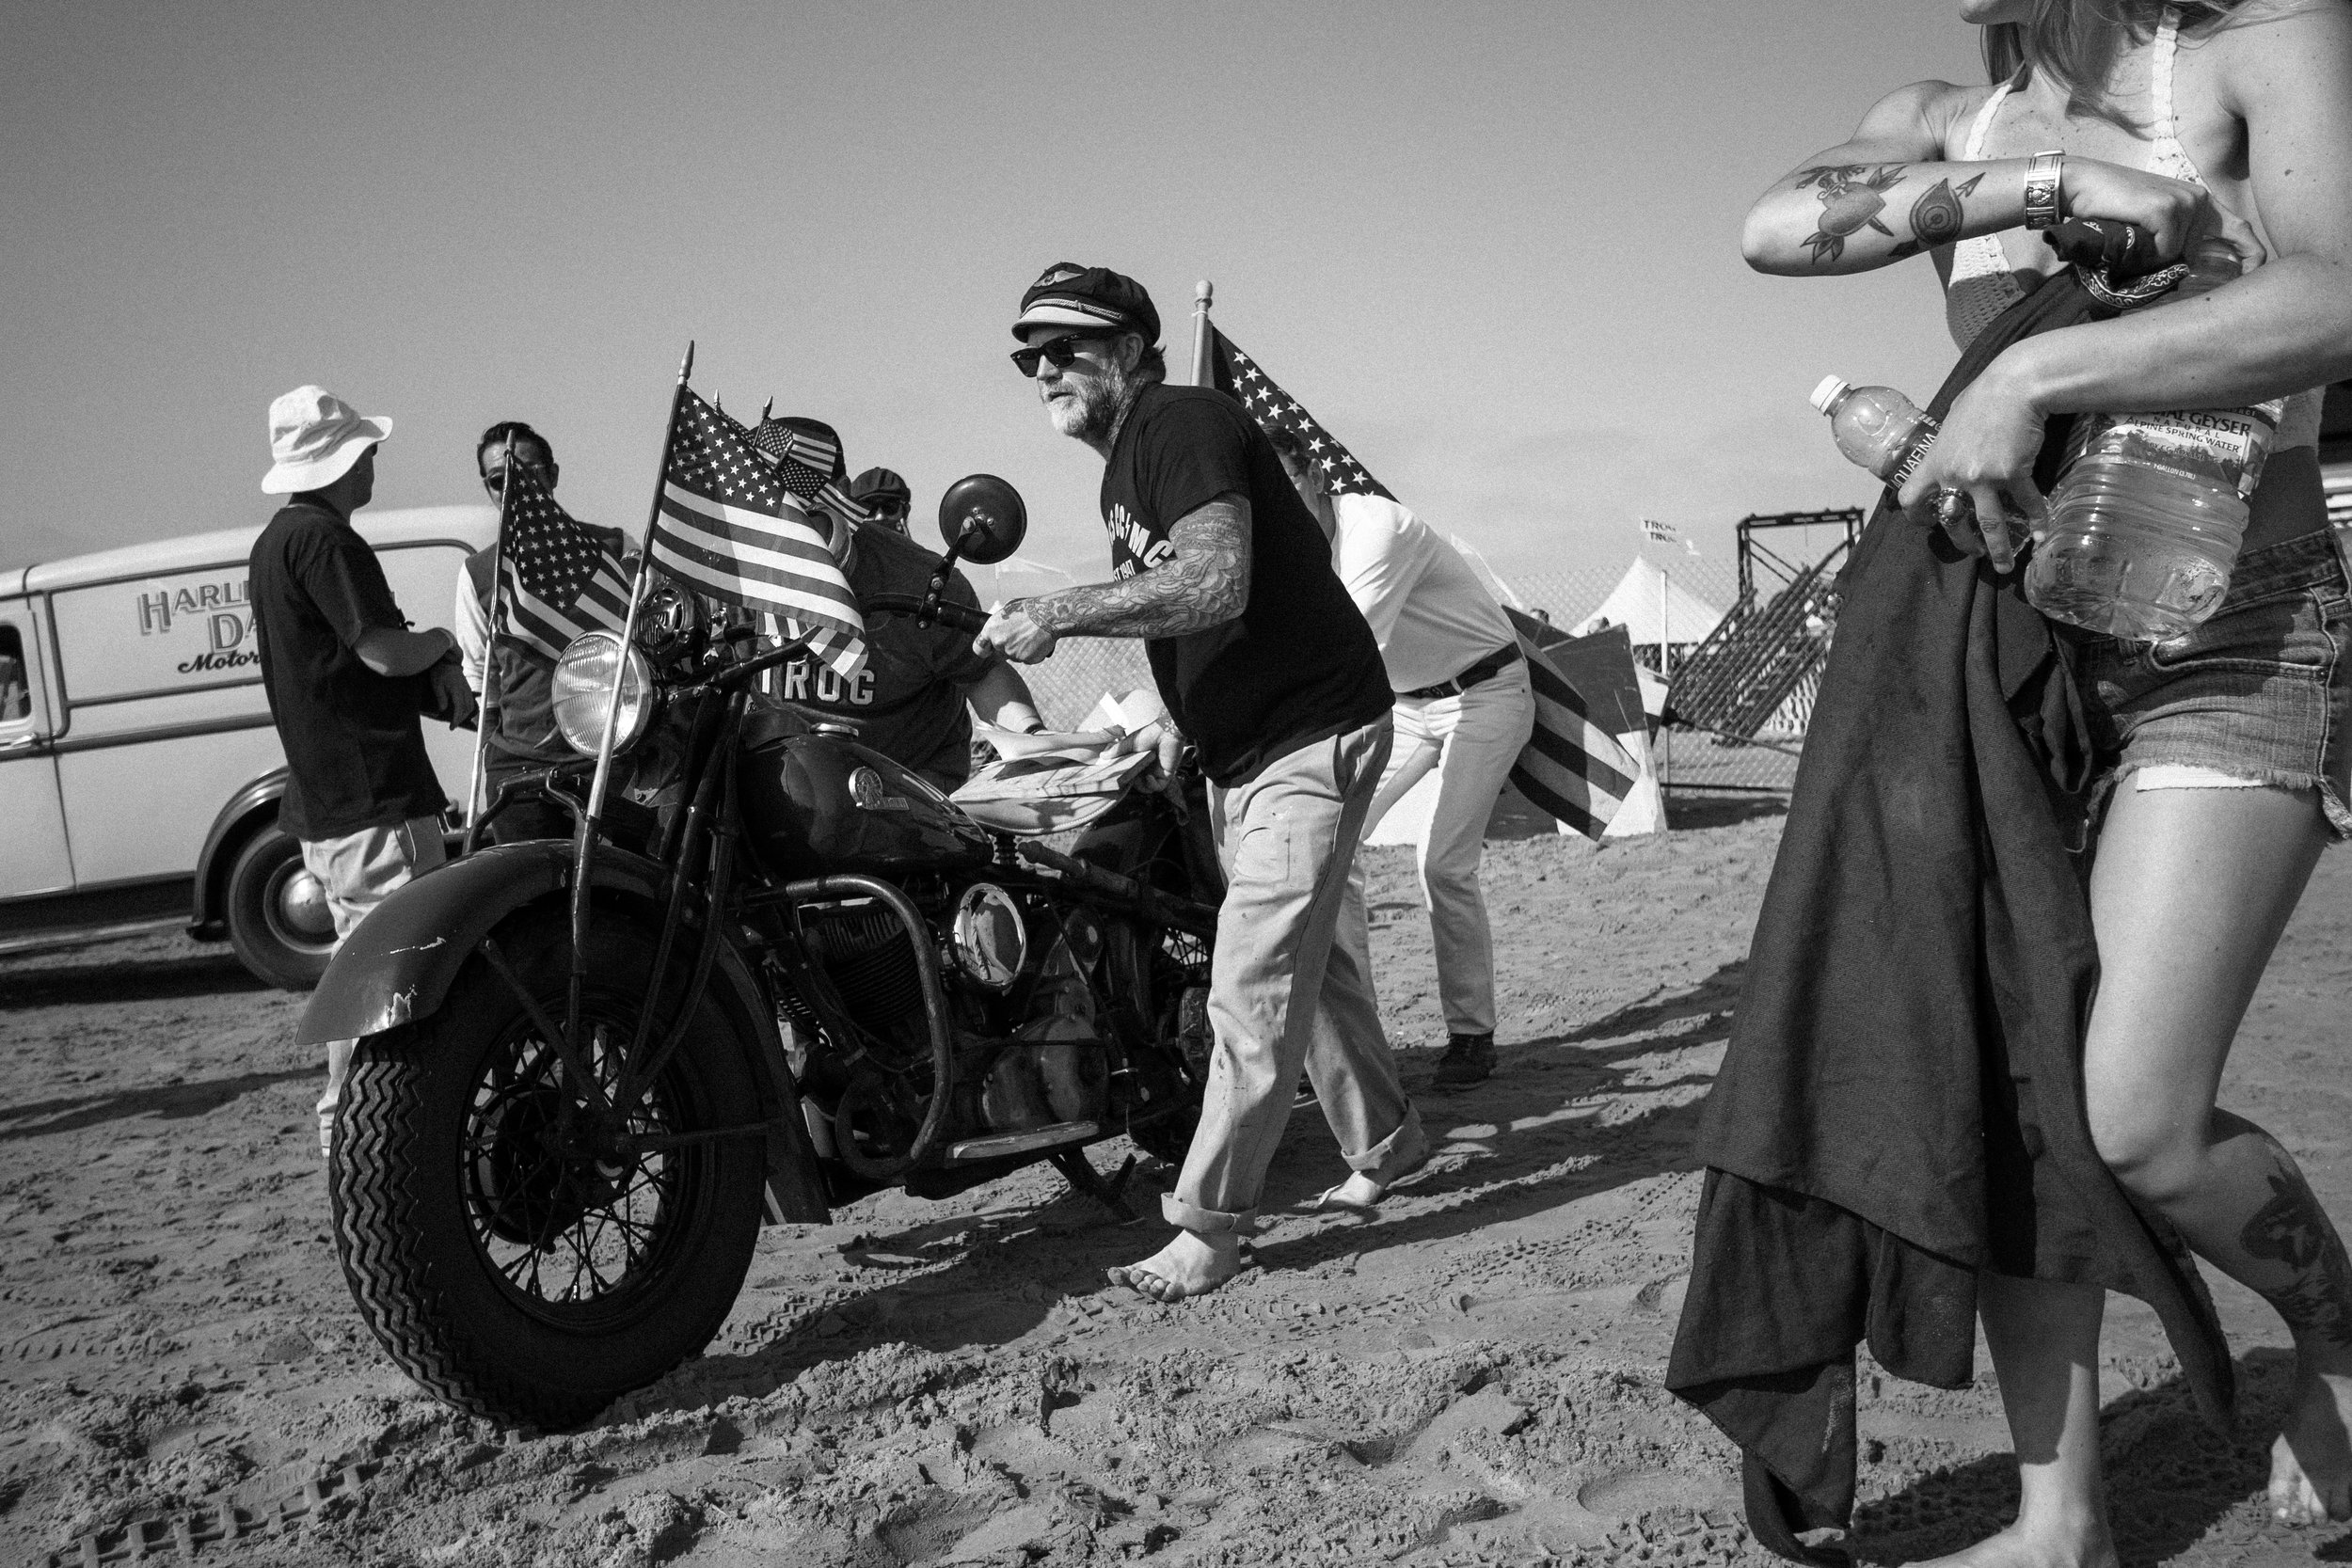 Mel Stultz moves an Indian on the beach at The Race of Gentlemen.